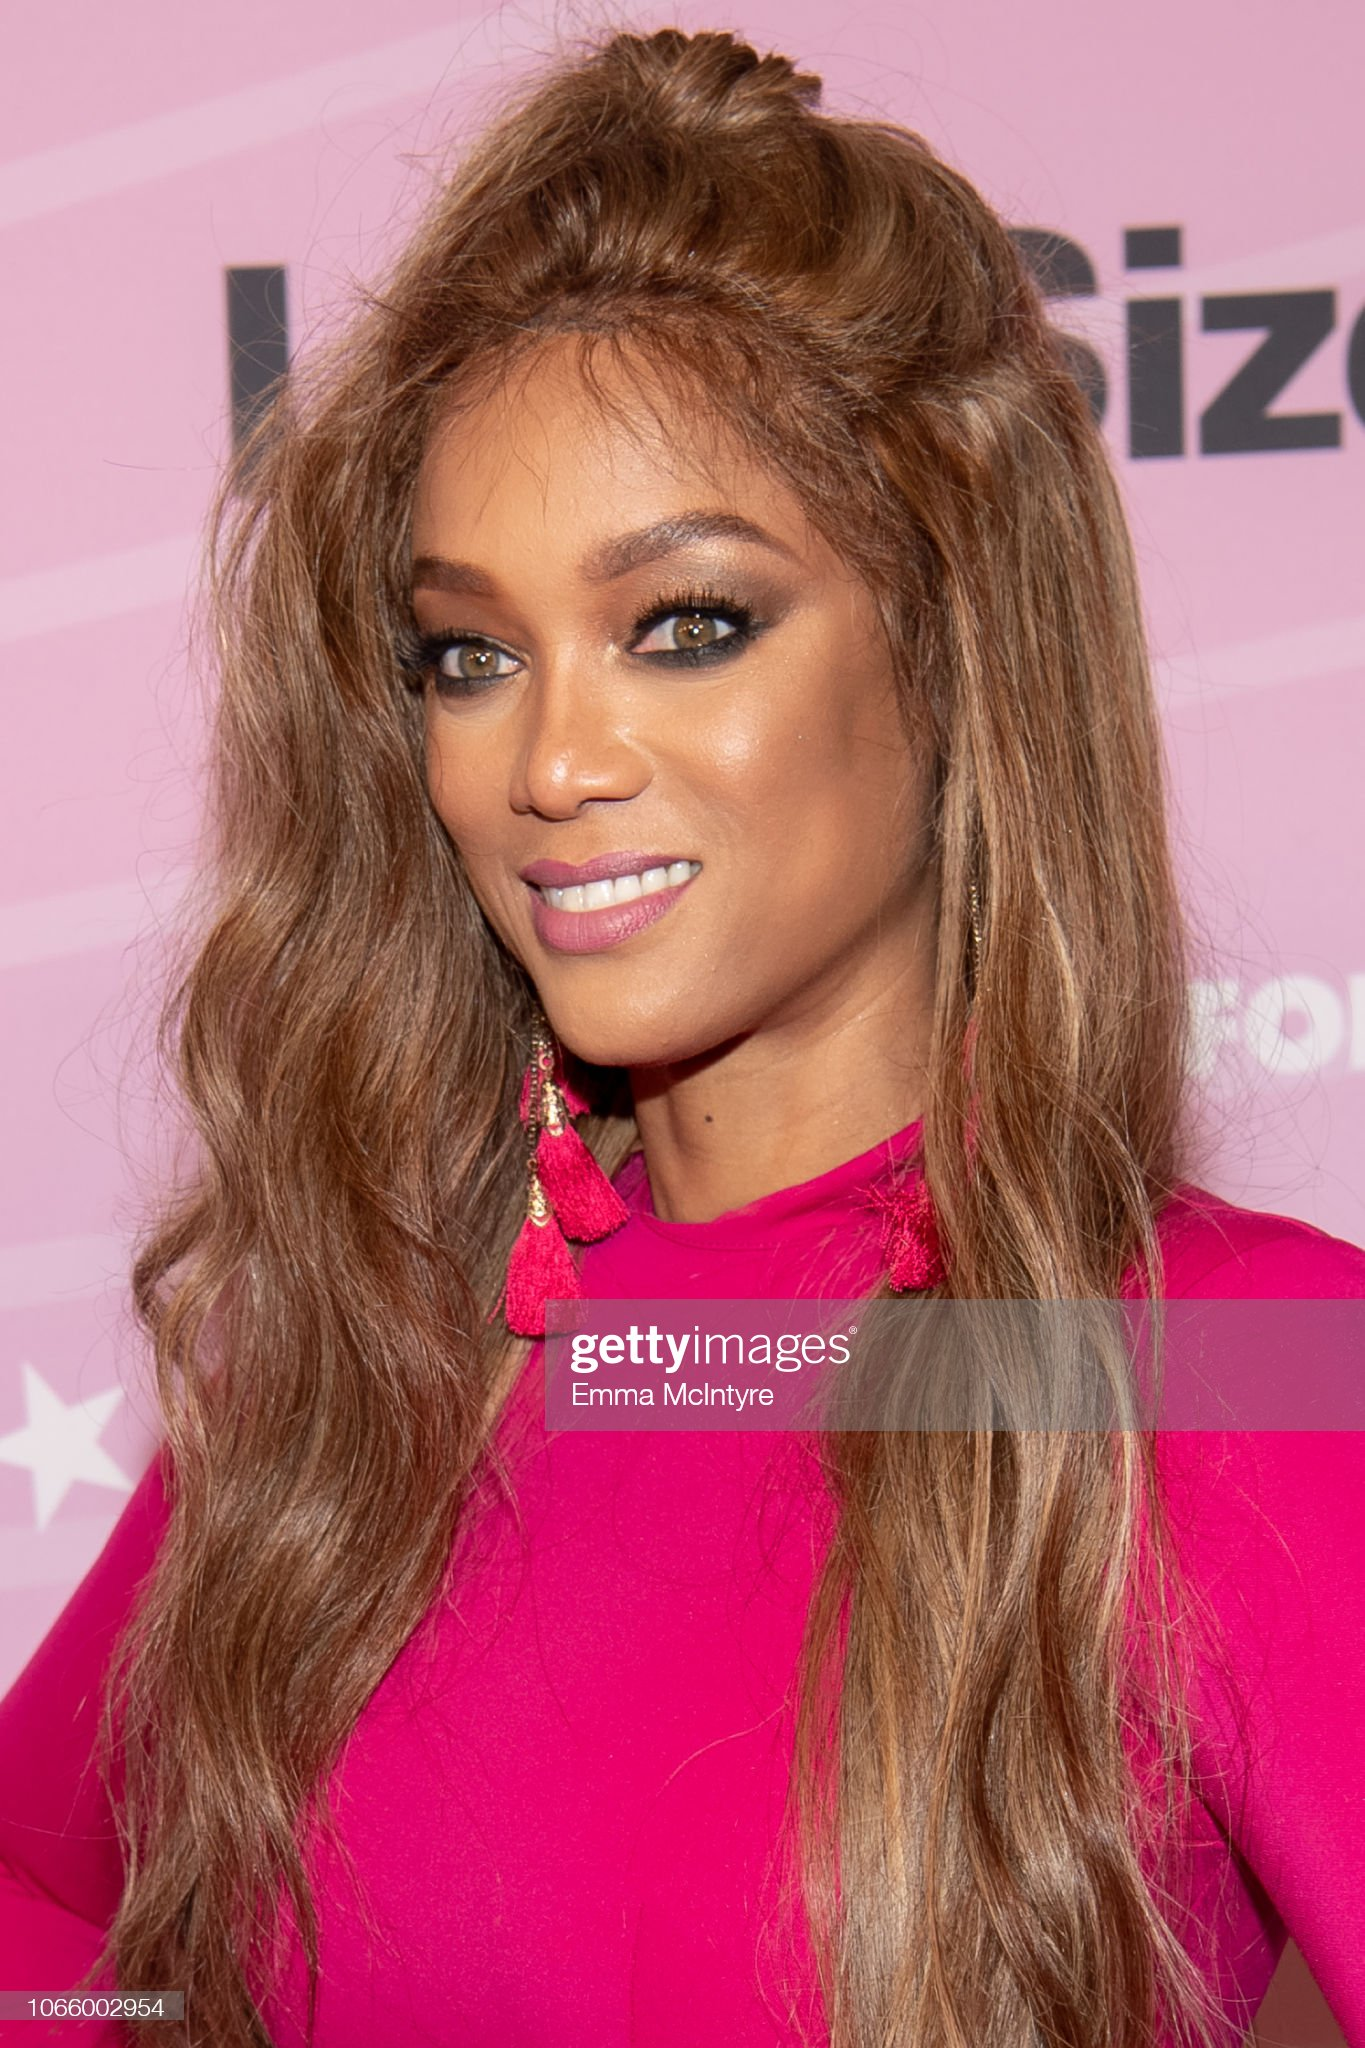 Hazel eyes - Personas famosas con los ojos de color AVELLANA Tyra-banks-attends-the-premiere-of-life-size-2-at-hollywood-roosevelt-picture-id1066002954?s=2048x2048